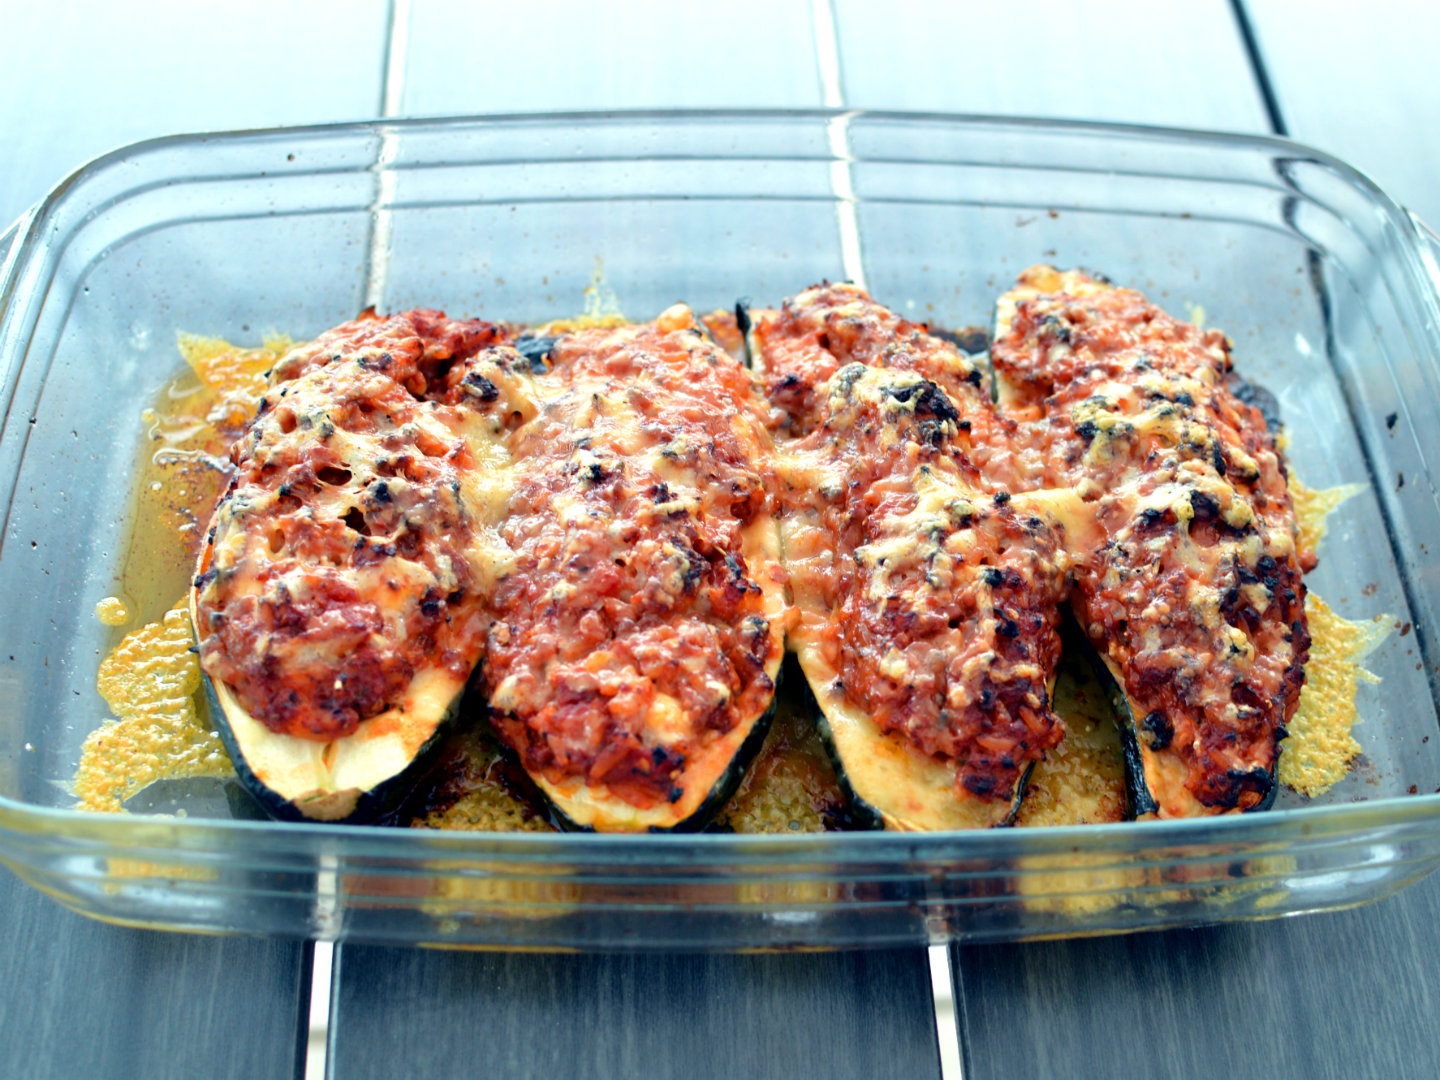 Zucchini filled with vegan ground meat